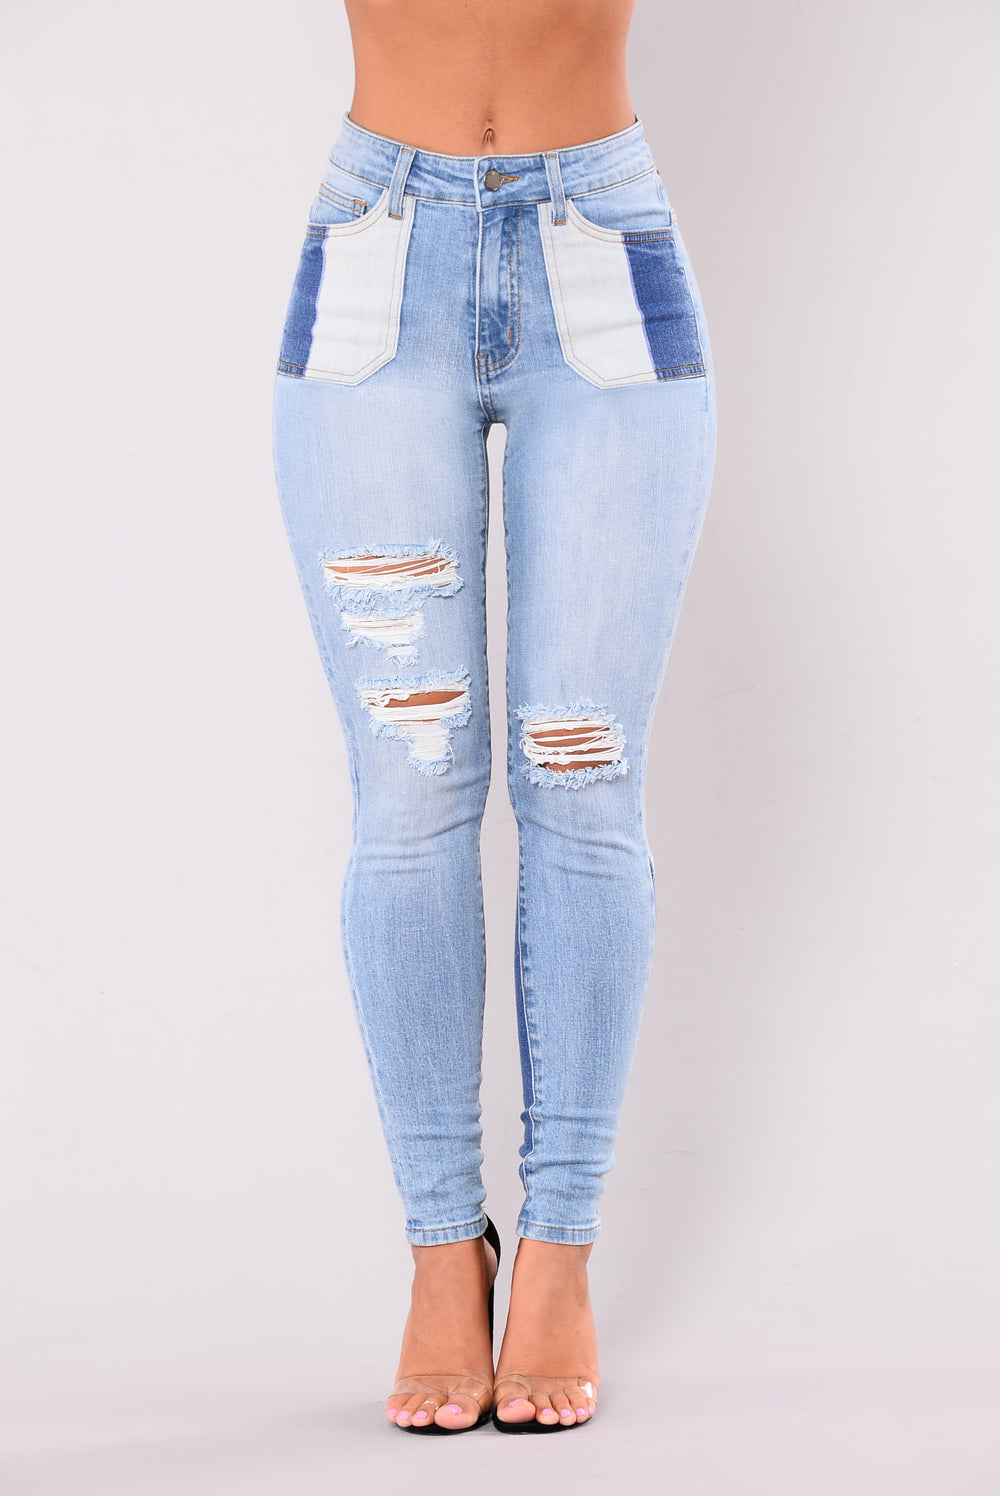 3 Missed Calls Jeans - Light Wash